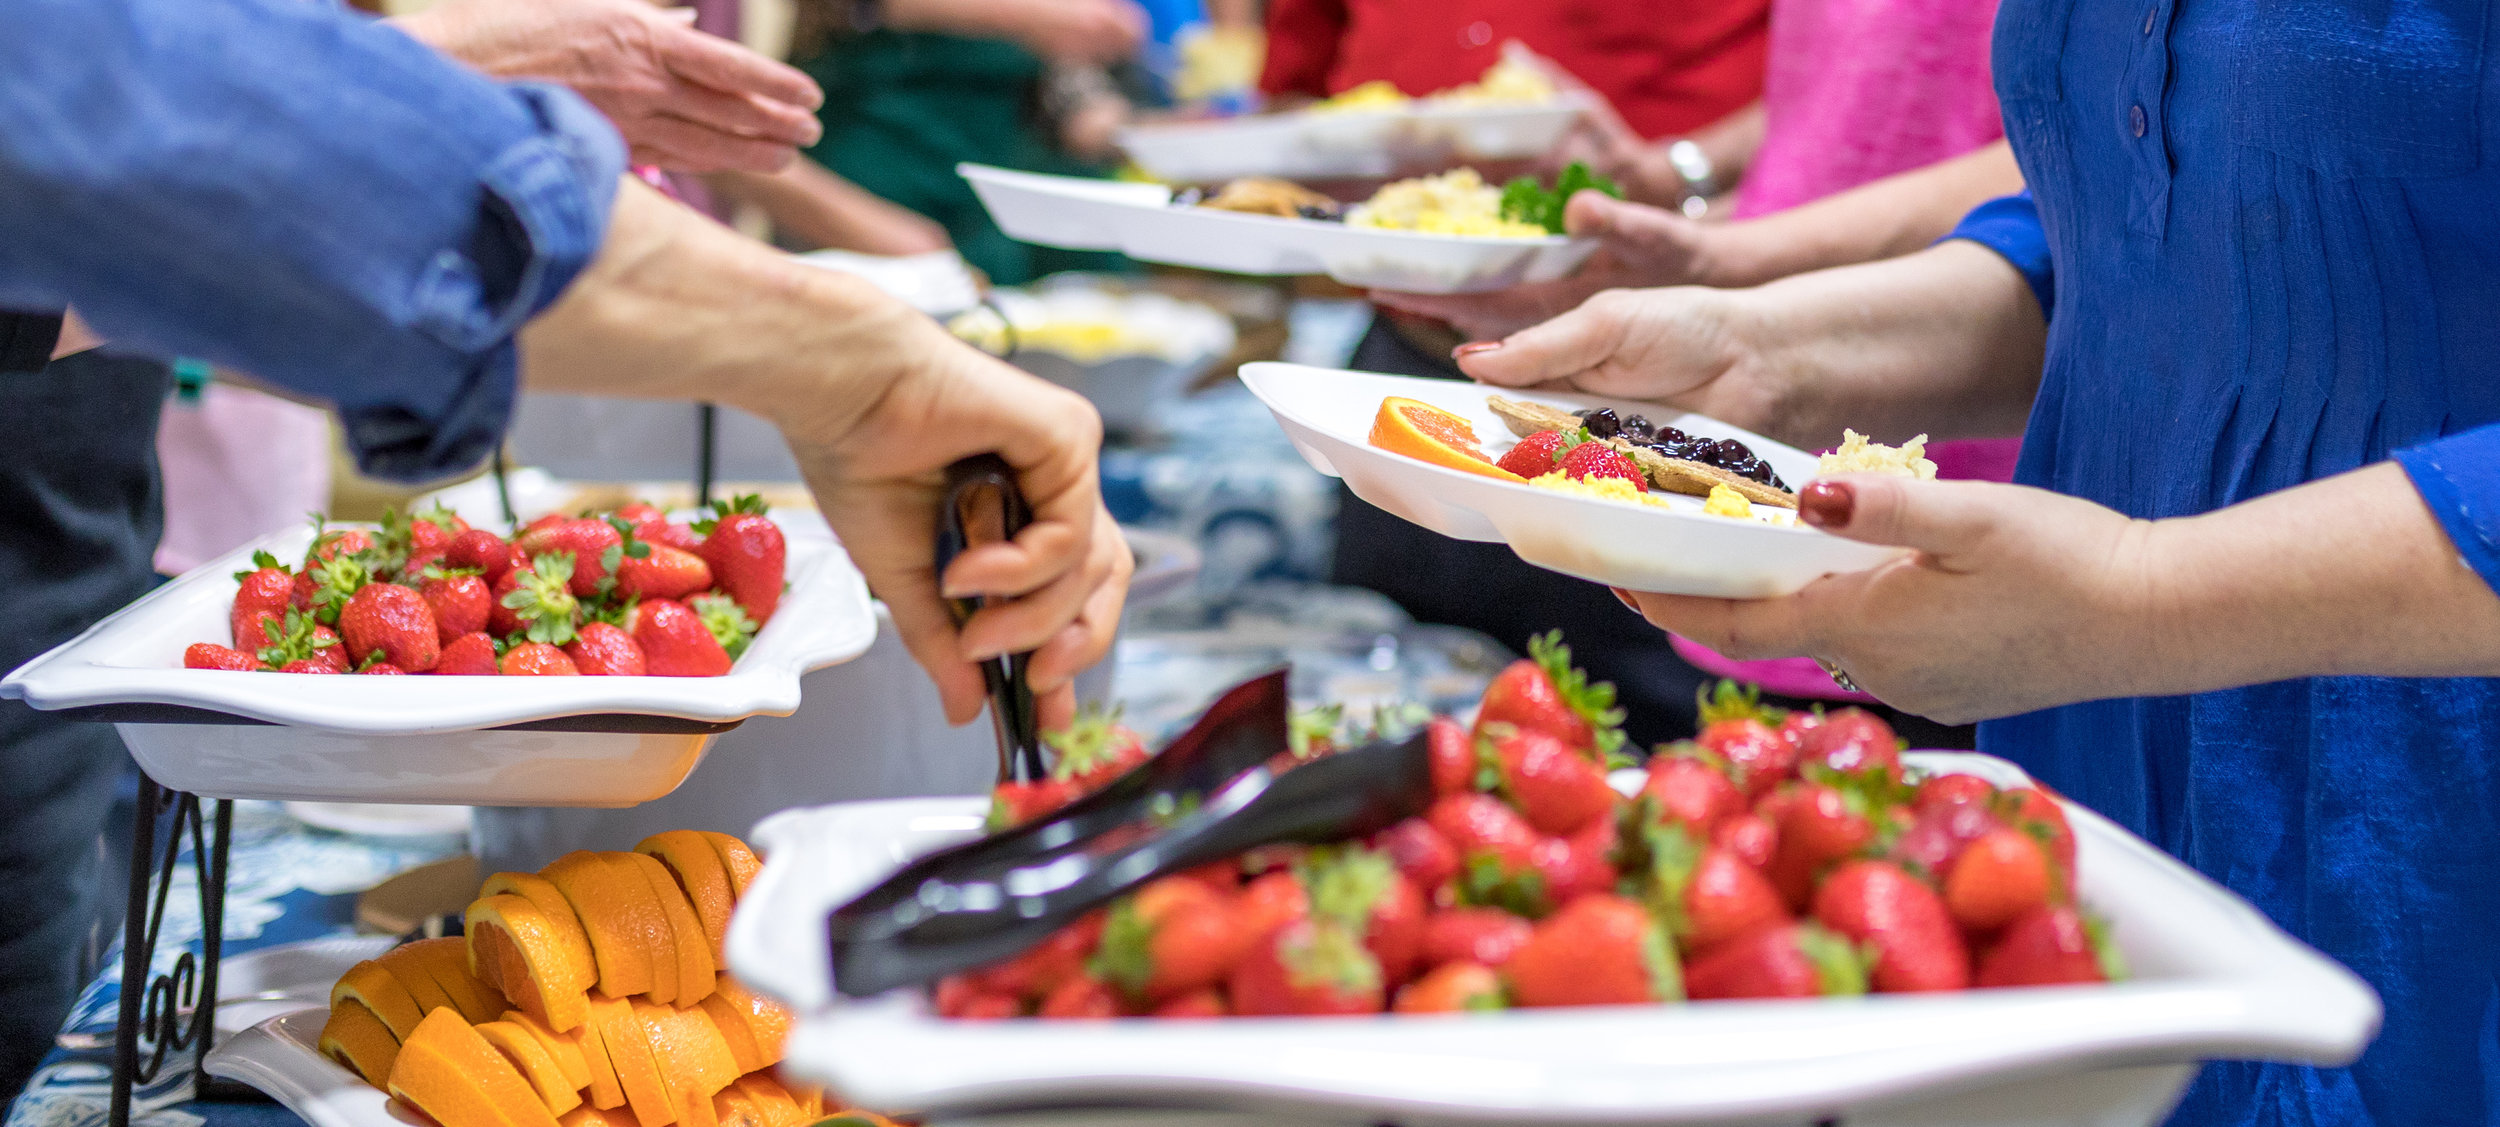 As part of the Dinner with the Doctor program, on alternate months attendees enjoy a complete, whole-food, plant-based meal prepared and served by church members and other volunteers.